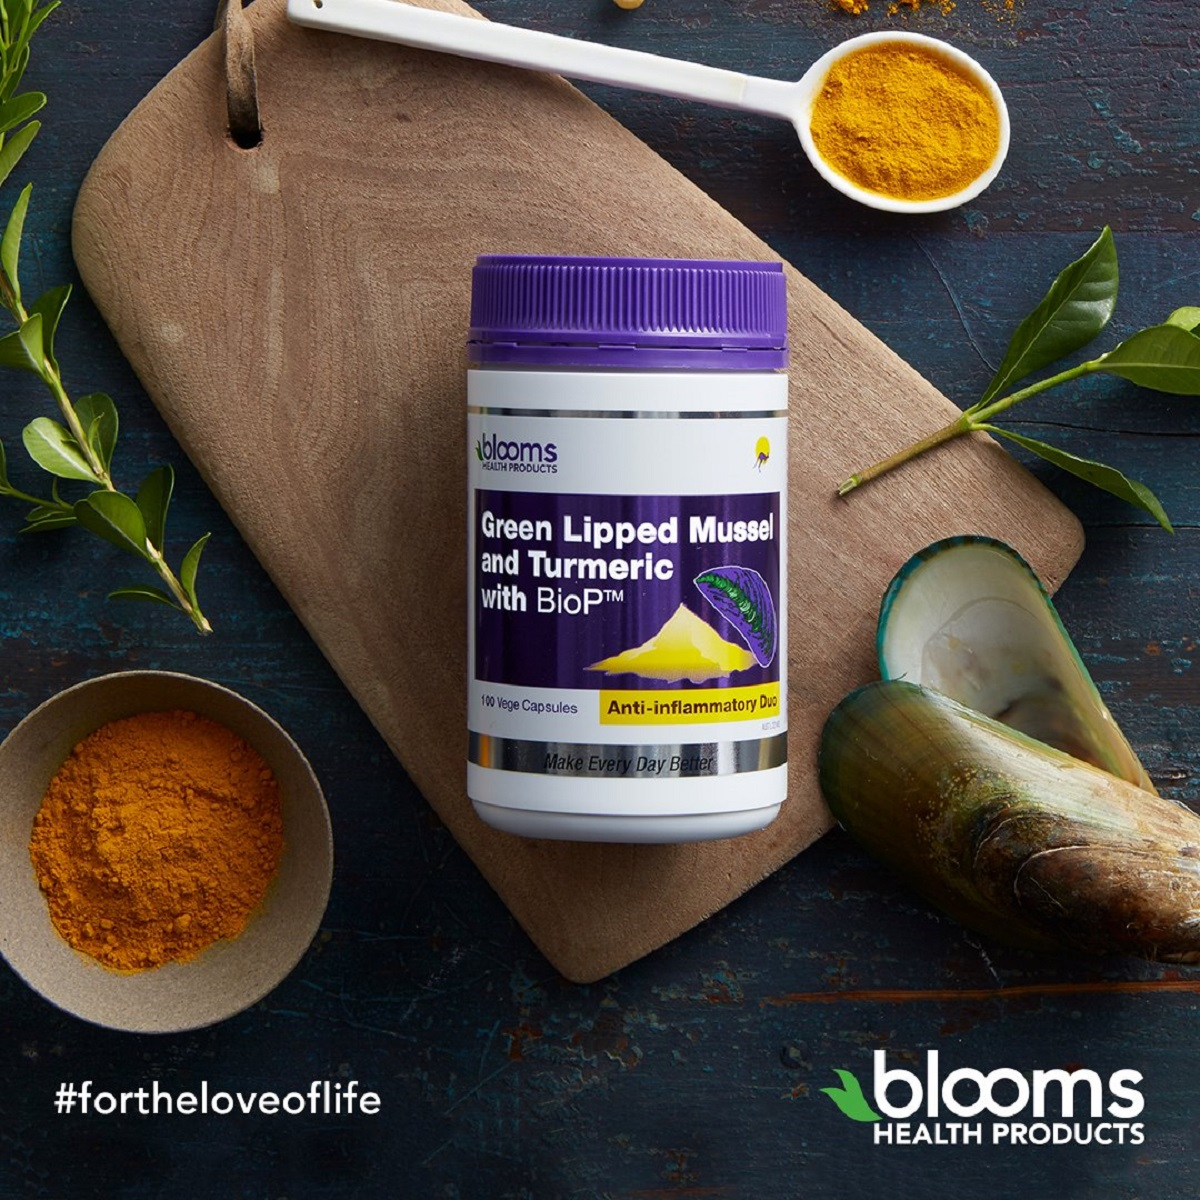 Blooms Green Lipped Mussel 500mg Turmeric with BioP 100vc_media-02